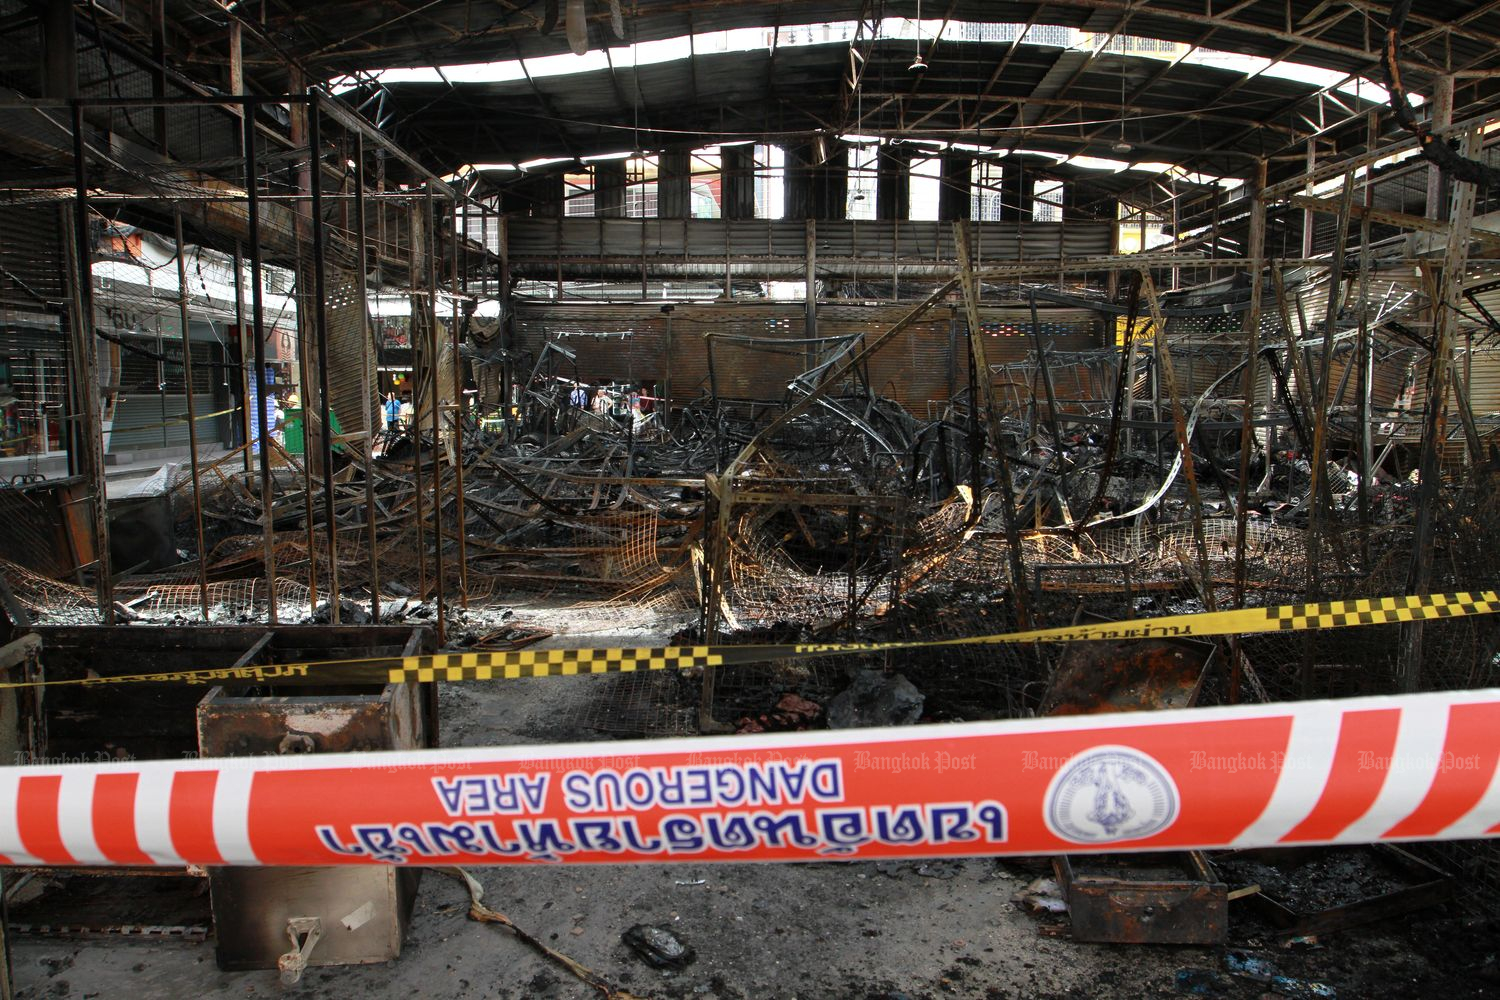 Damage caused by a firebomb at Pratunam Market on Friday. (Photo by Pawat Laopaisarntaksin)